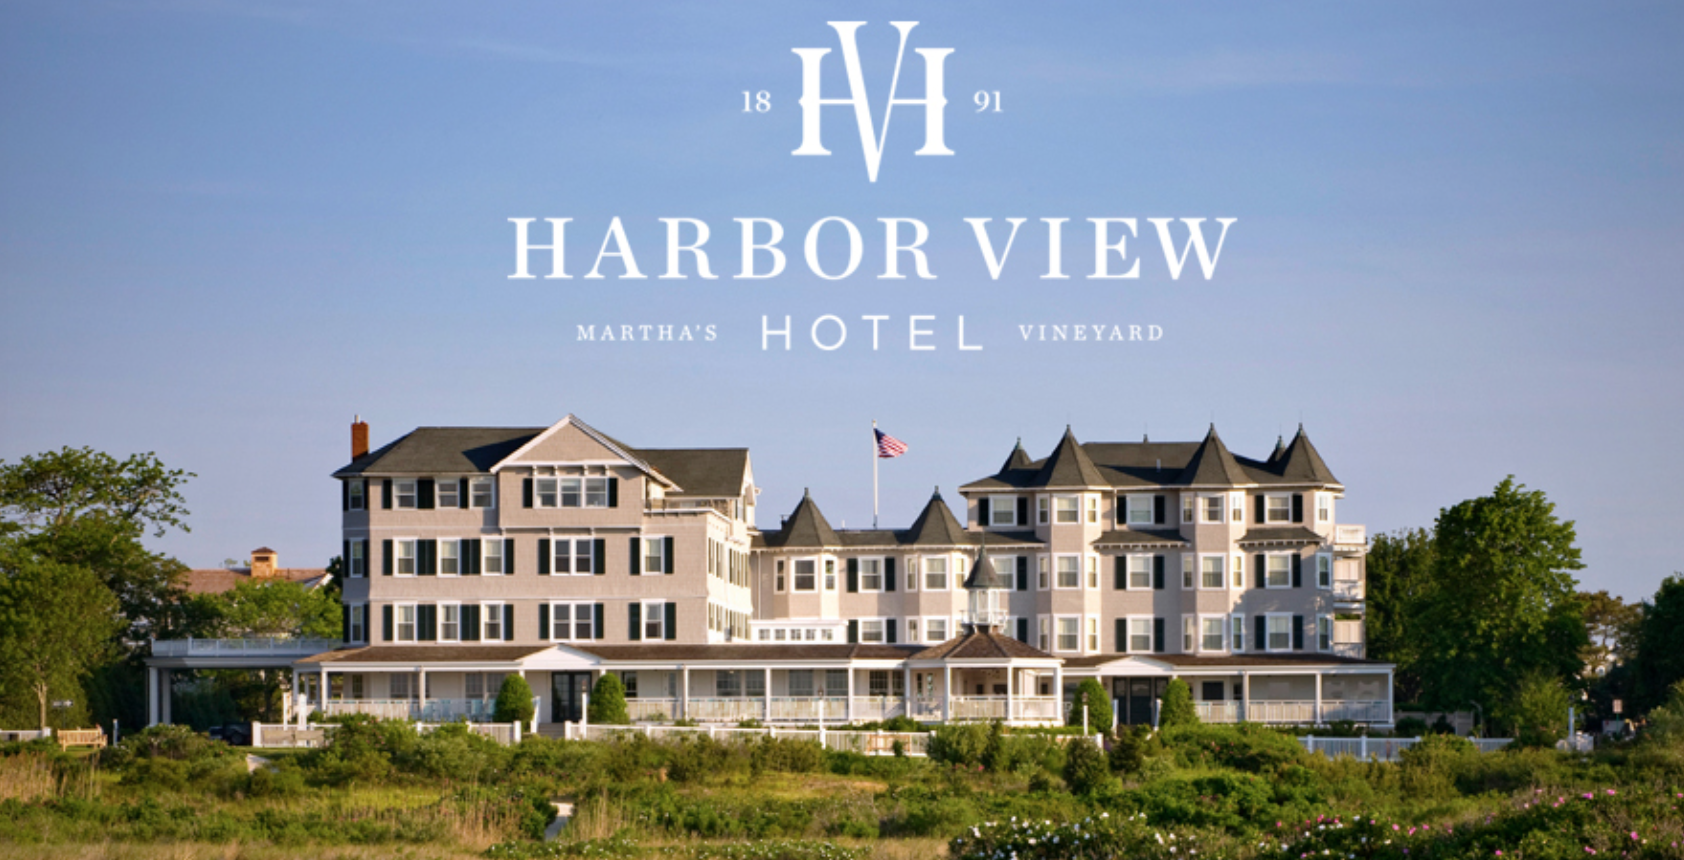 This women-led retreat will be held at the historic and elegant Harbor View Hotel on Martha's Vineyard in Nantucket Sound, off the coast of Cape Cod, Massachusetts.